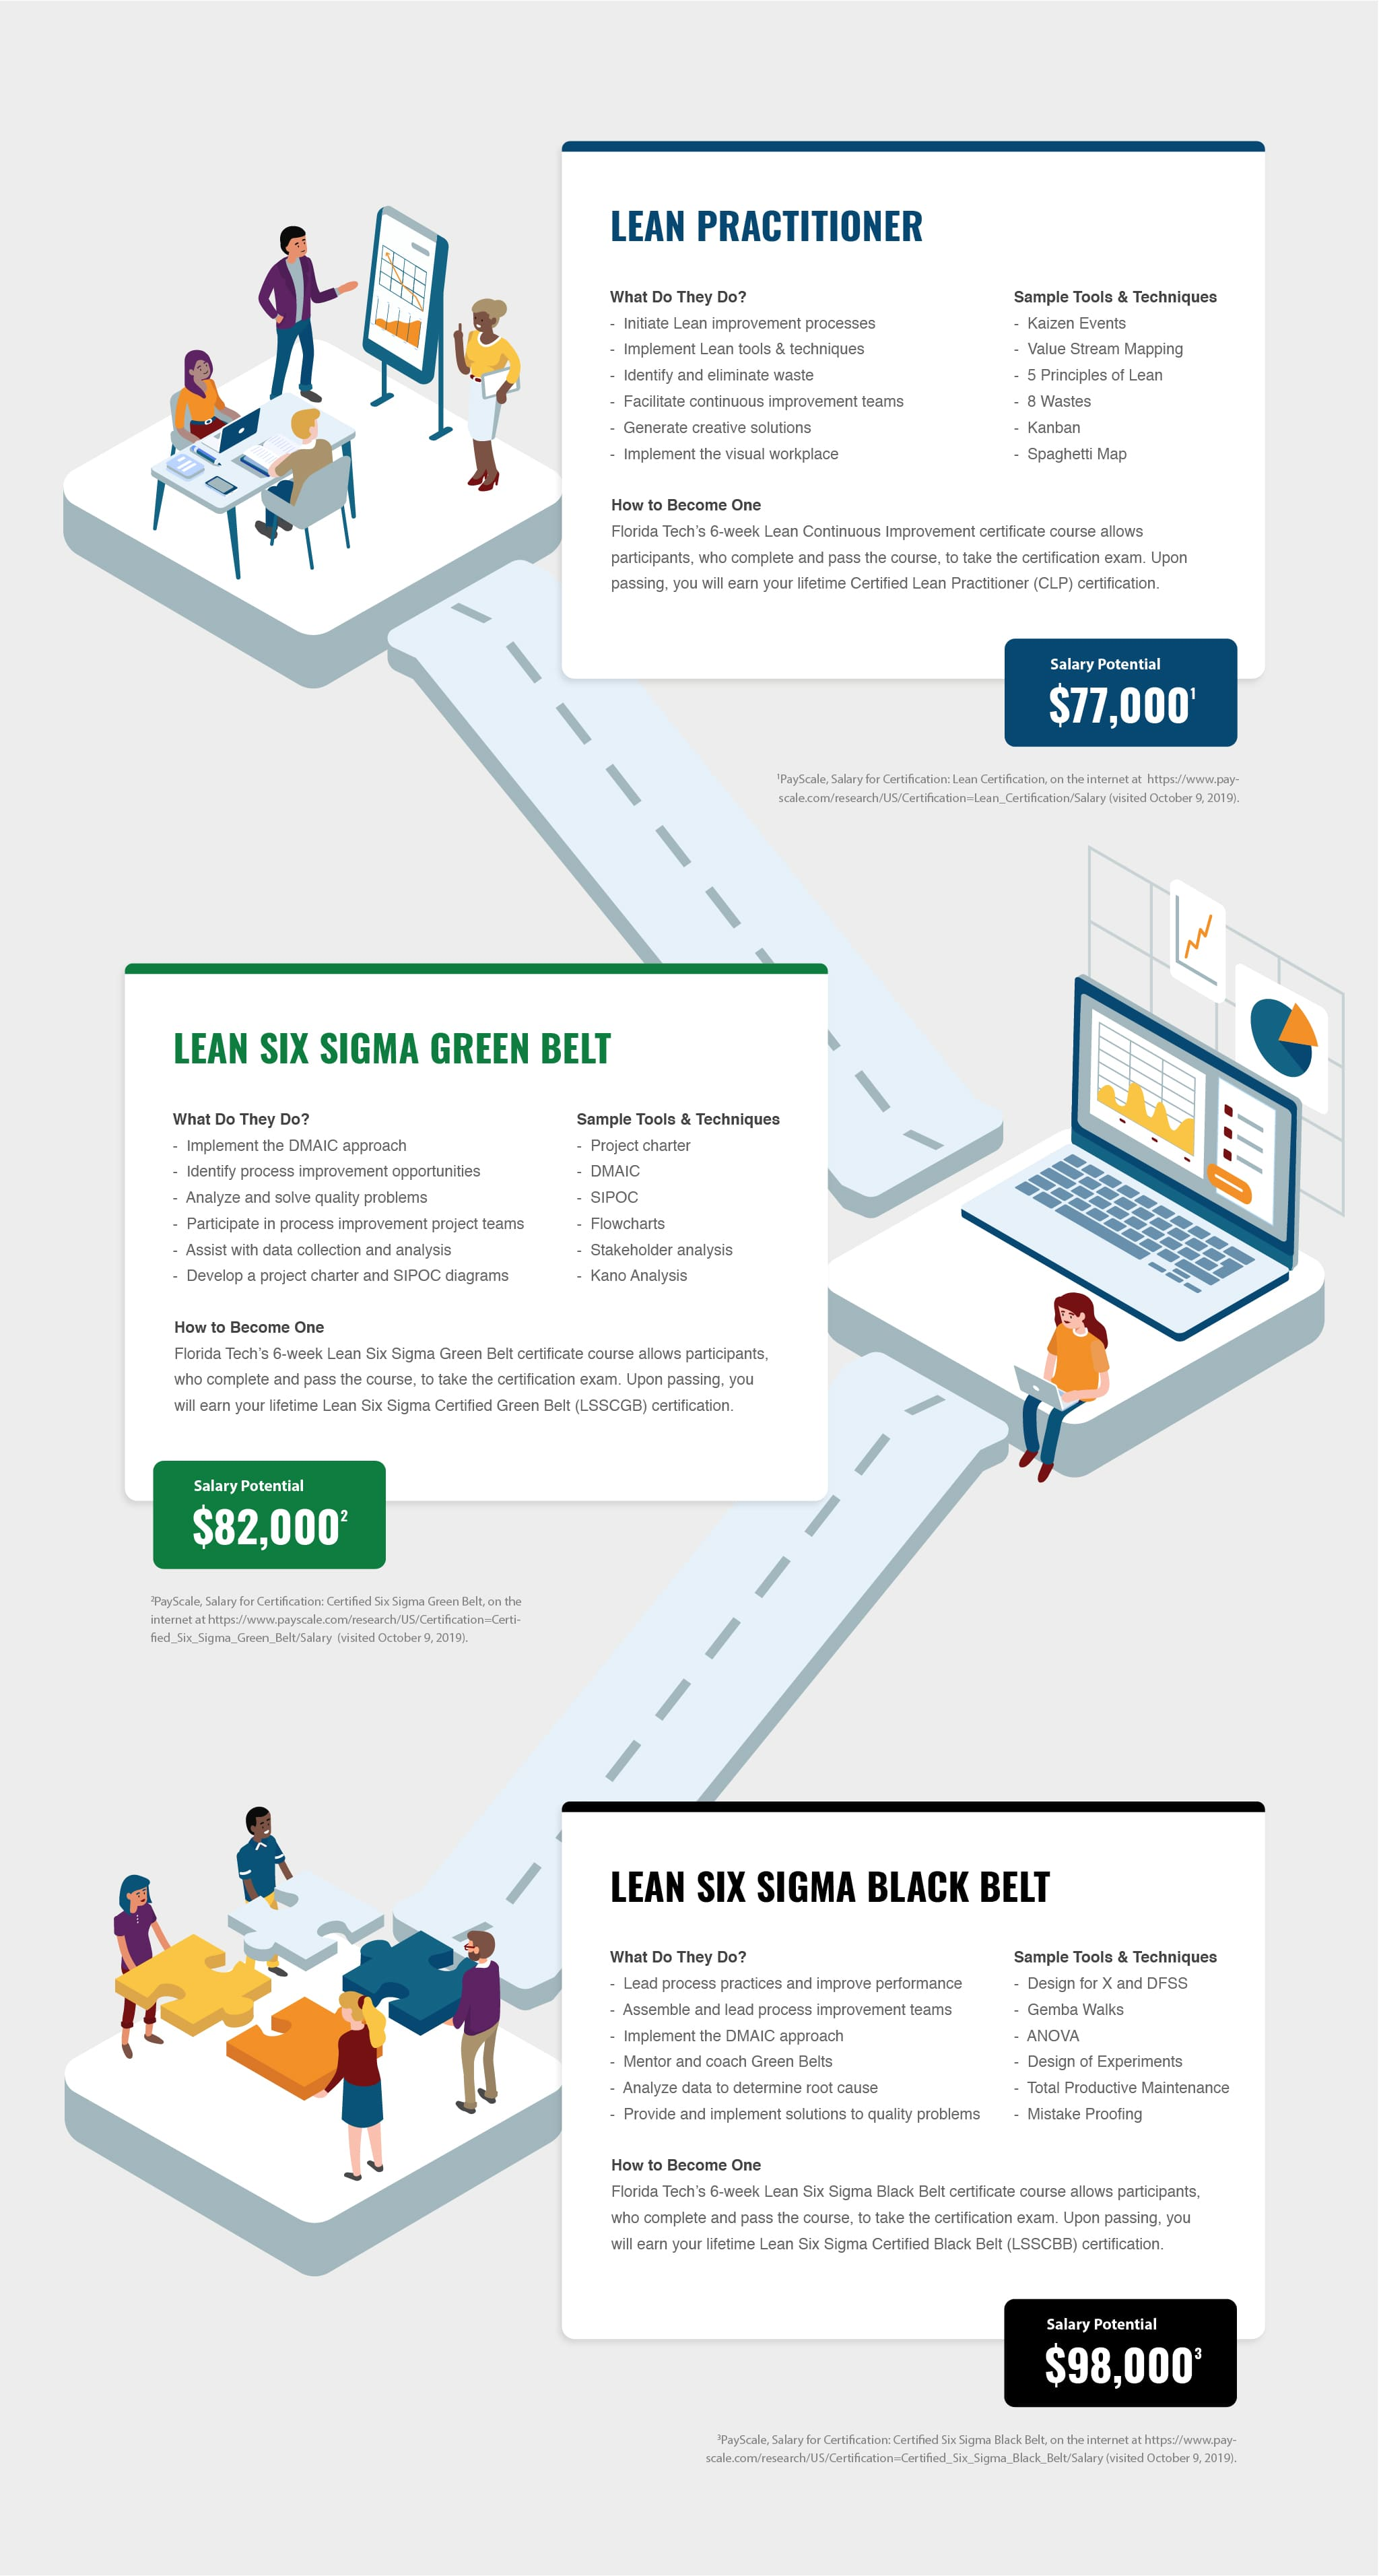 Infographic describing Lean, Lean Six Sigma Green Belt and Lean Six Sigma Black Belt career information.